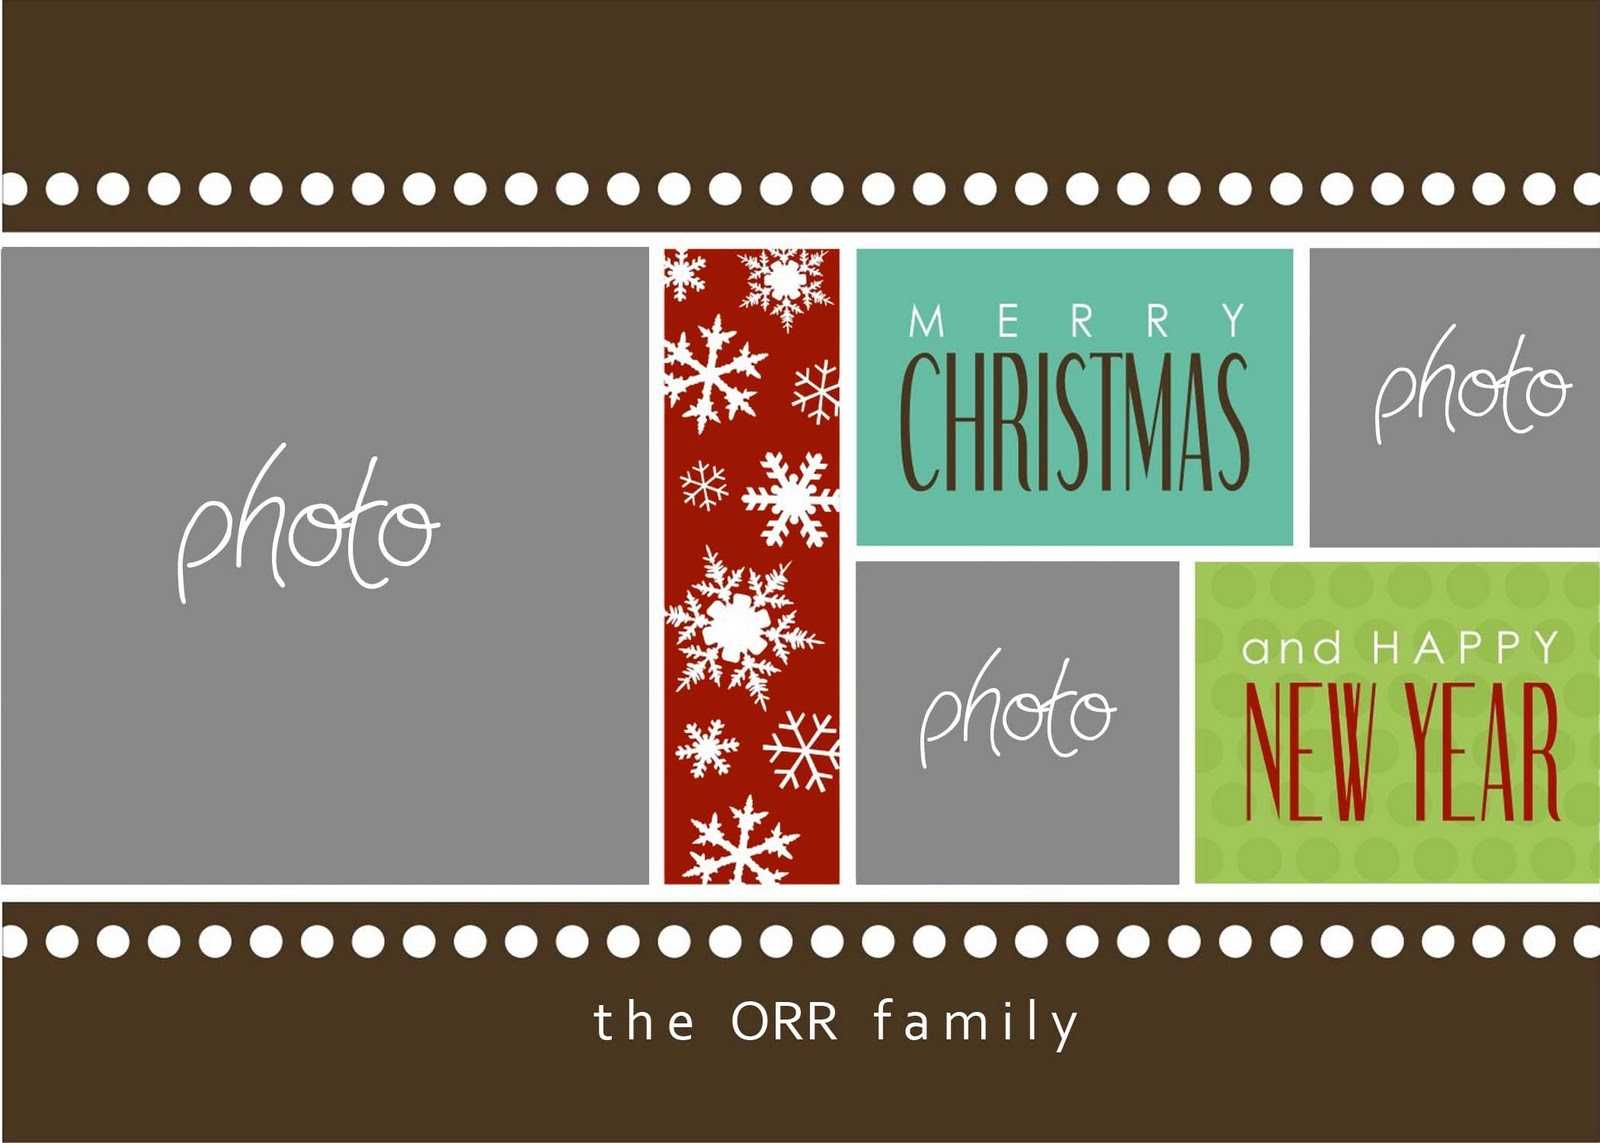 Christmas Cards Templates Photoshop ] - Christmas Card For Christmas Photo Card Templates Photoshop